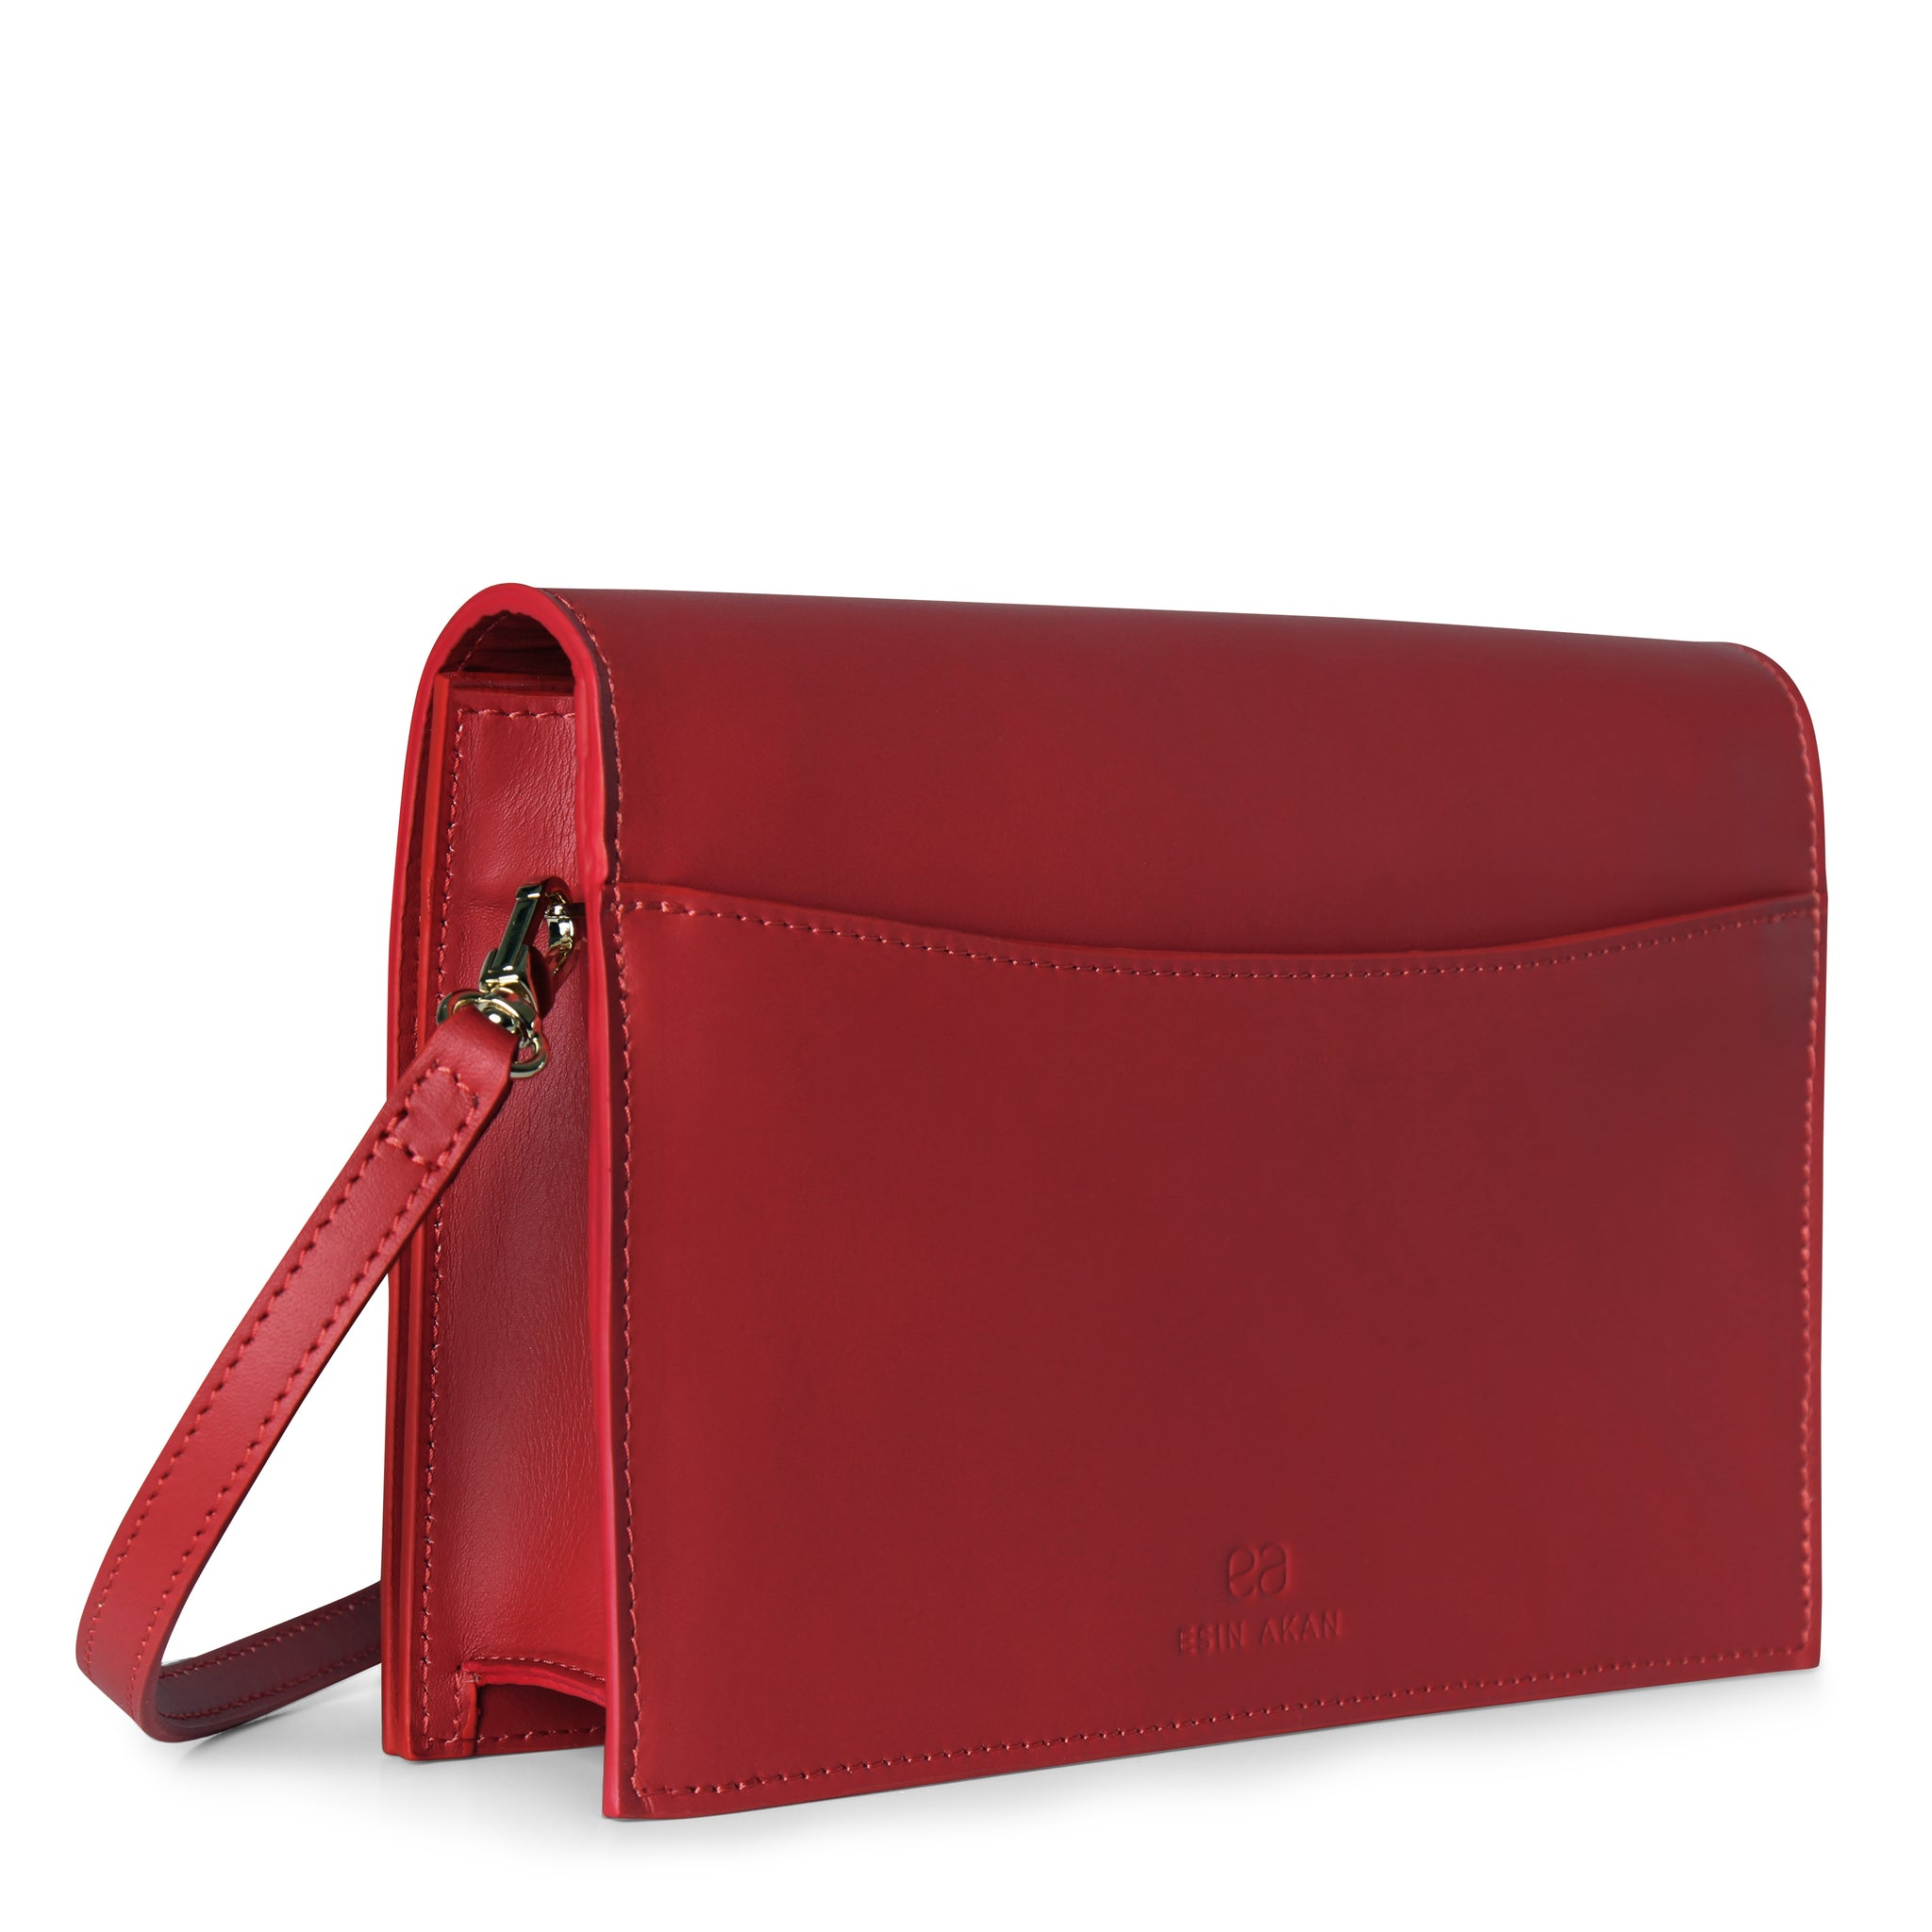 A convertible leather red clutch bag with a knot detail in front that could be used as a crossbody bag, back image.